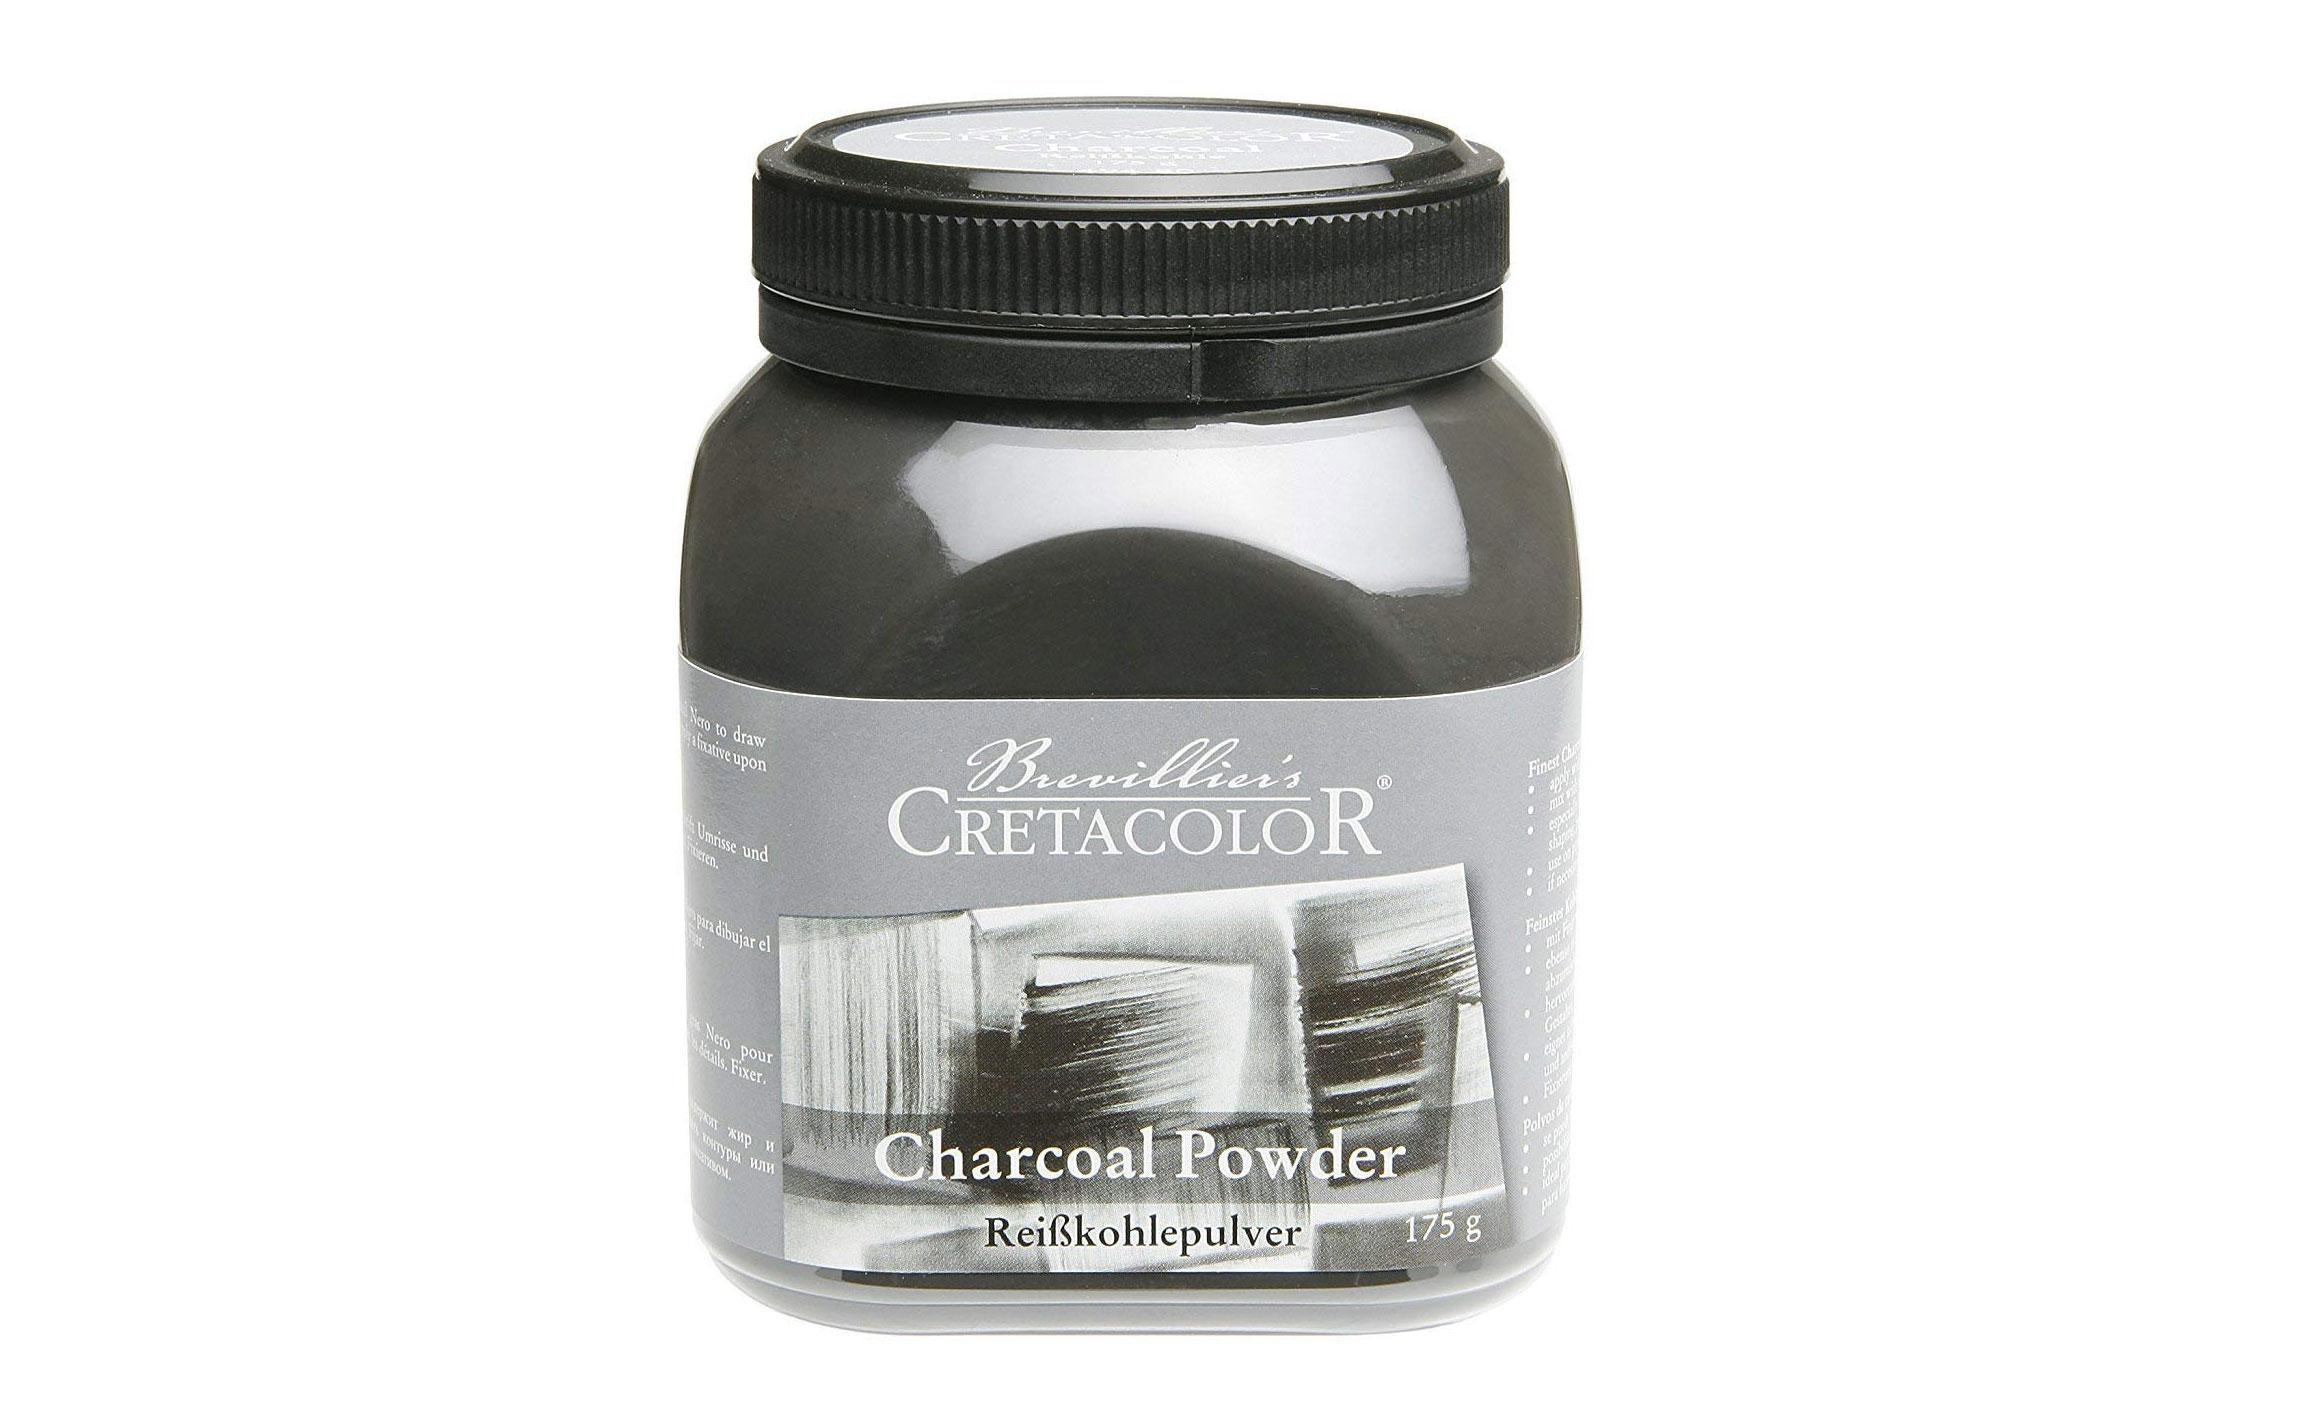 Cretacolor charcoal powder